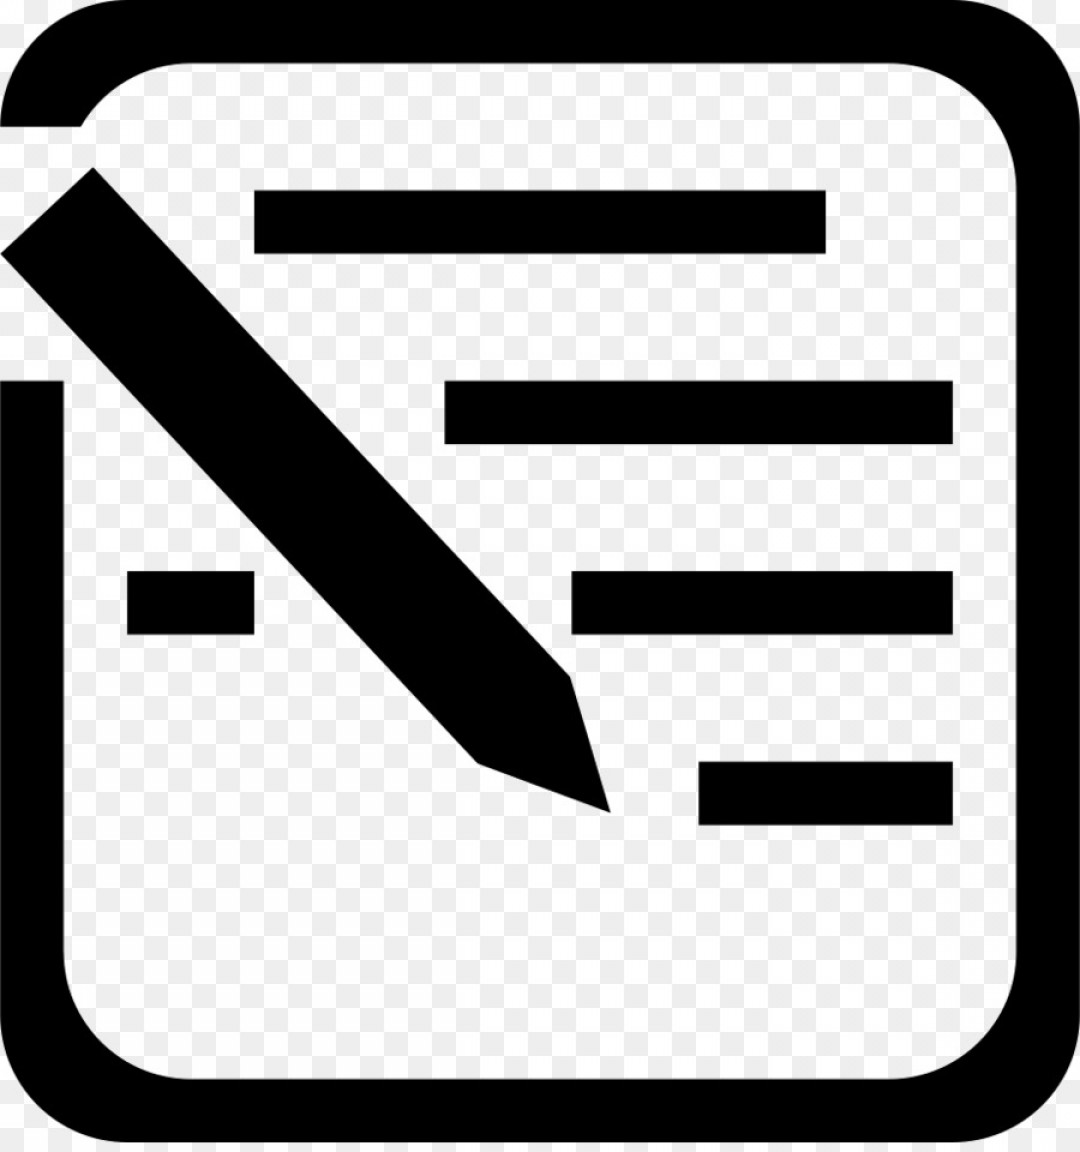 Vector NFL Logo Black And White: Png Az Law Conflict Resolution Computer Icons Educatio